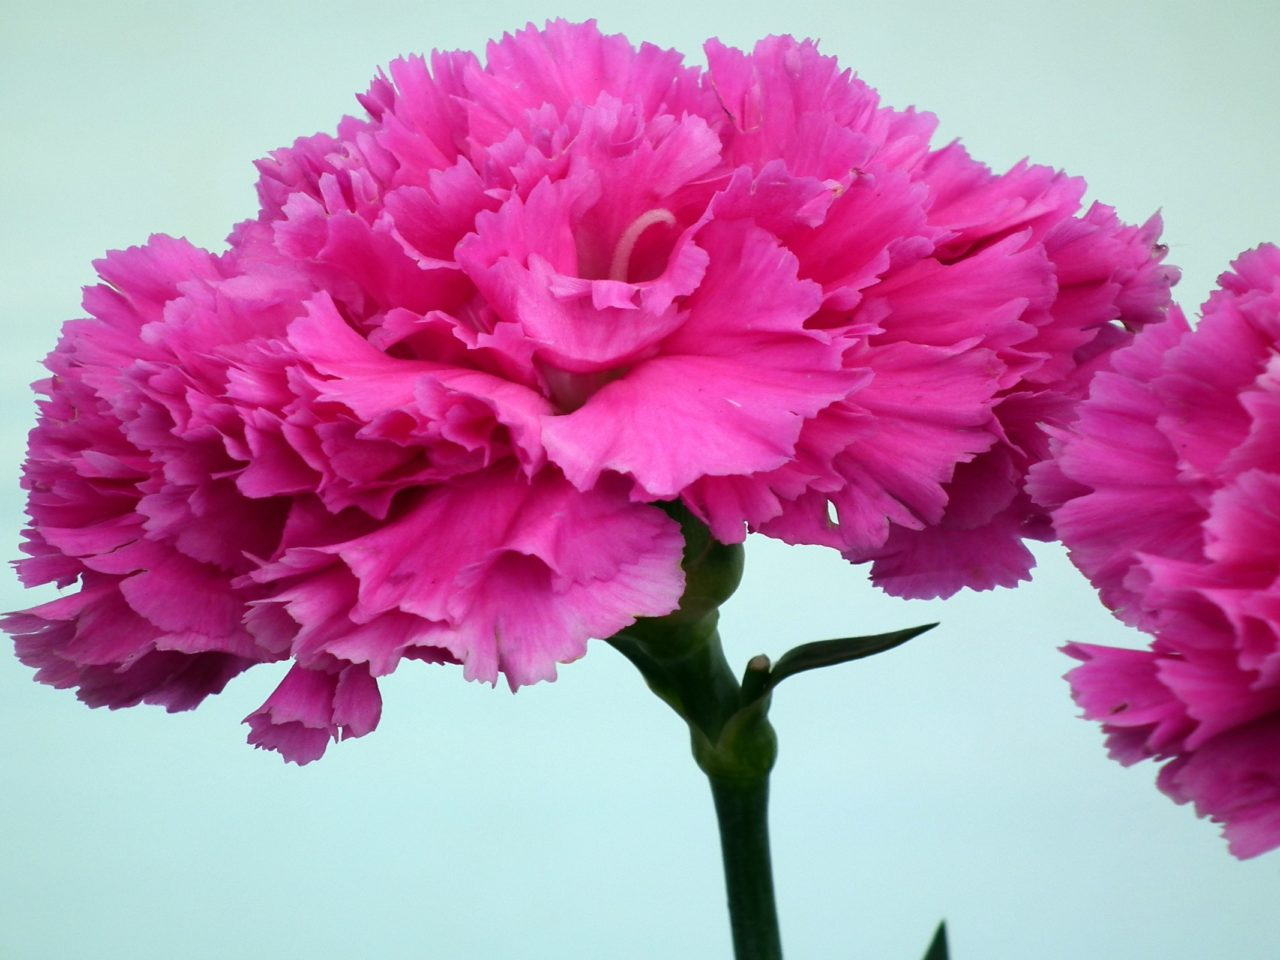 New Hd Wallpapers For Iphone 4 Hot Pink Carnation Flower Wallpapers13 Com